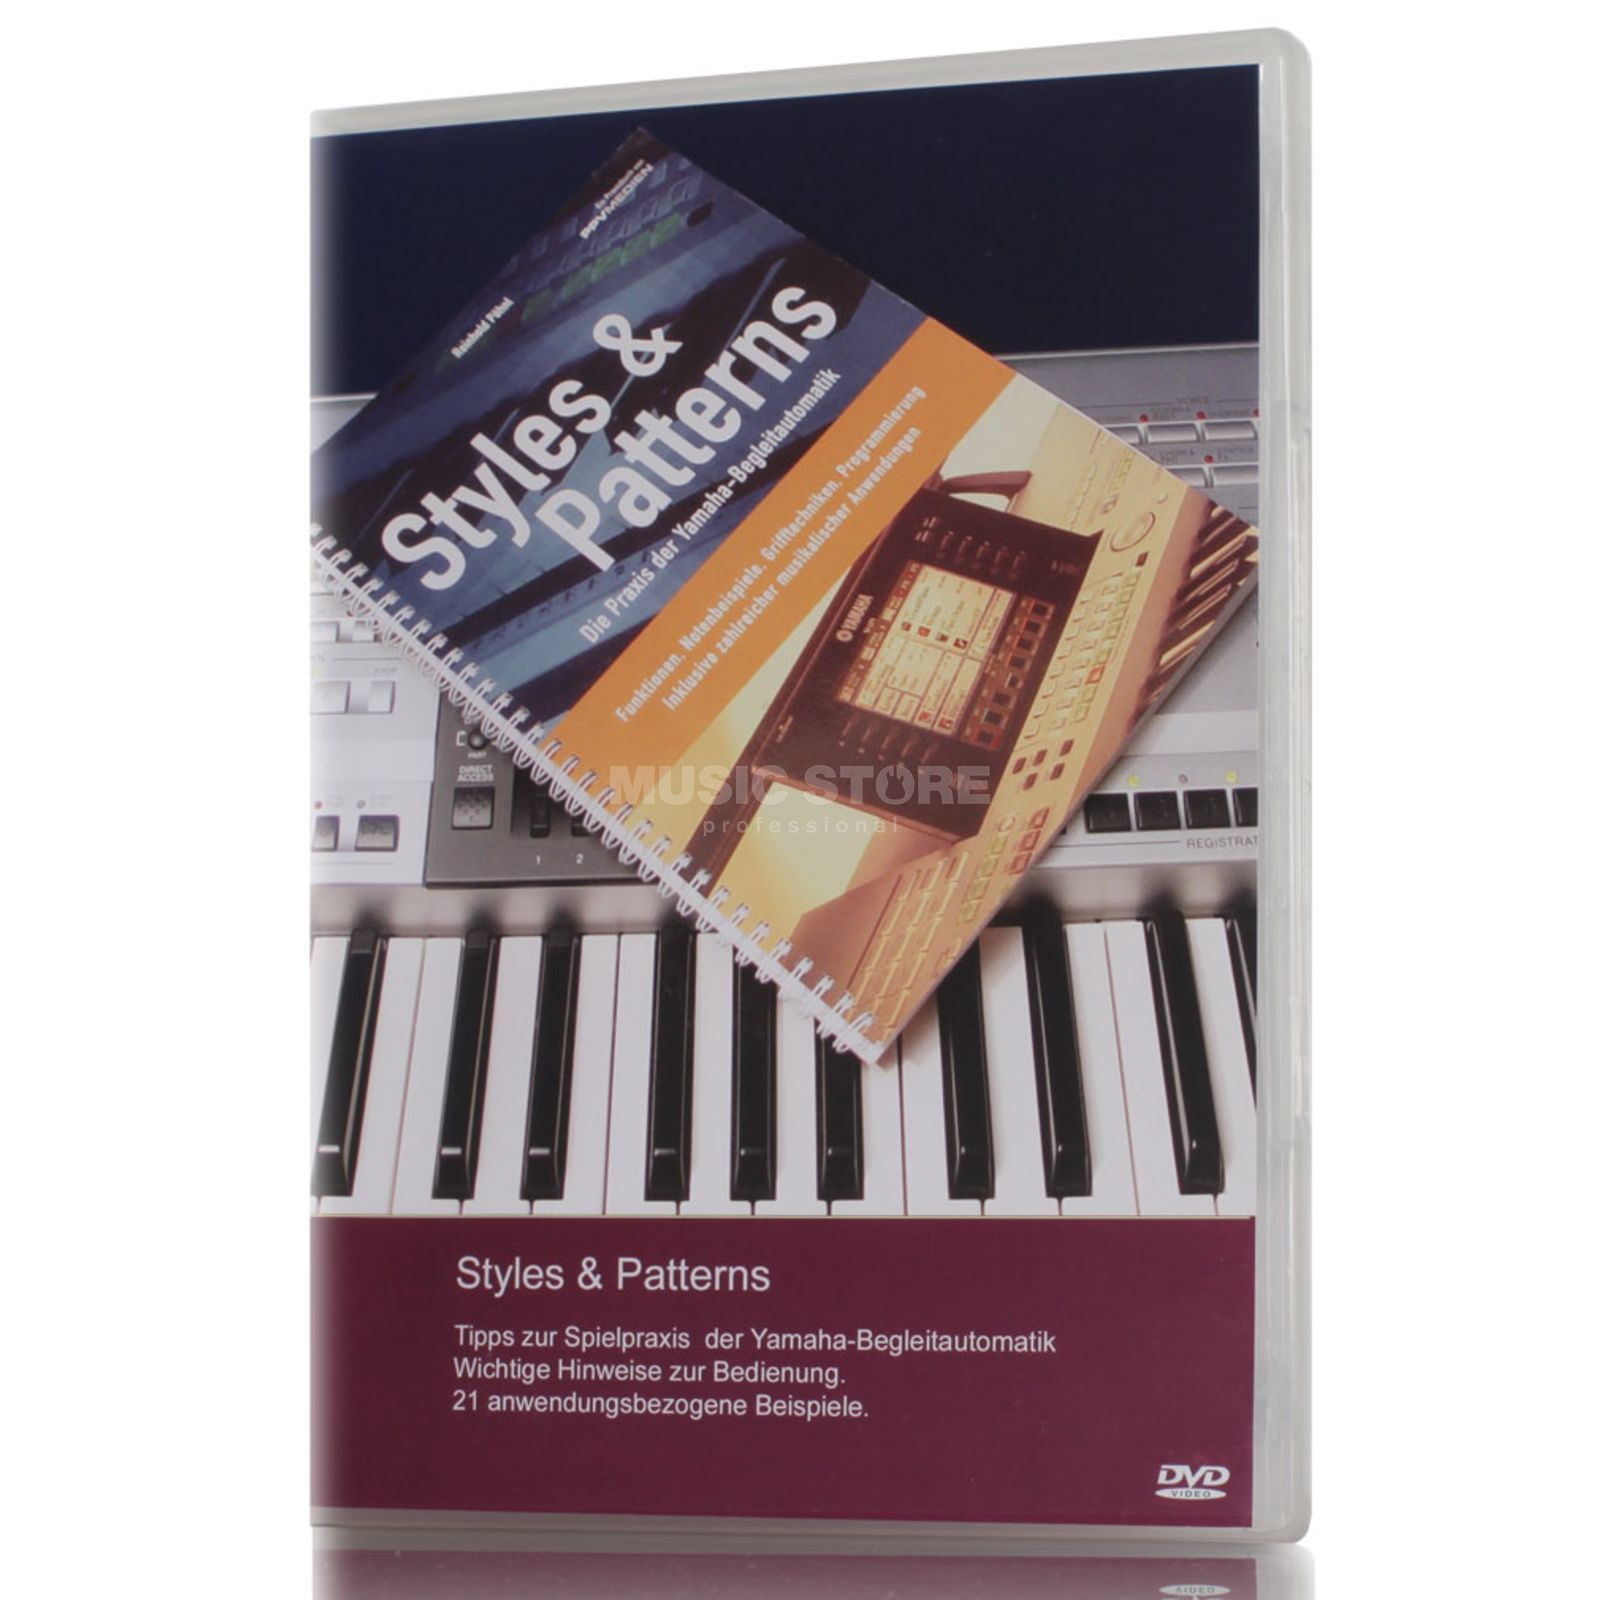 Keyboard-Seminare Styles & Patterns Video DVD für alle Yamaha Kb. Produktbild